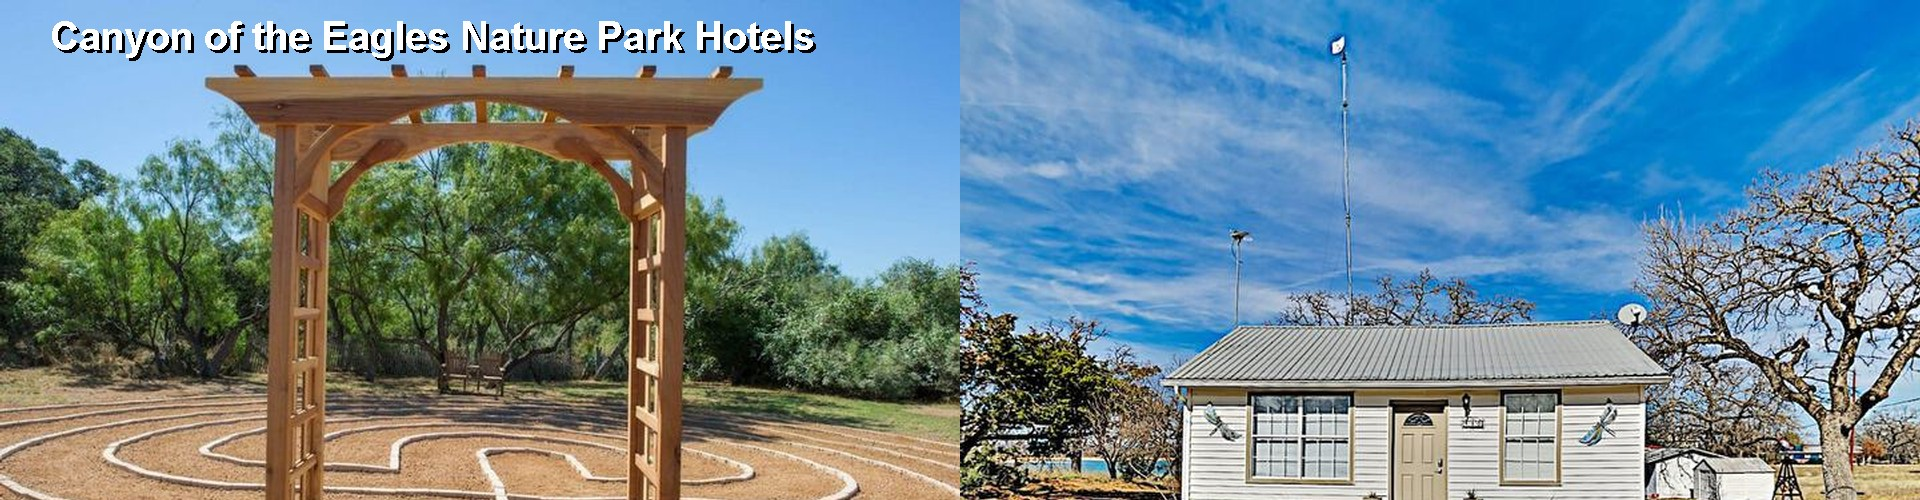 5 Best Hotels near Canyon of the Eagles Nature Park